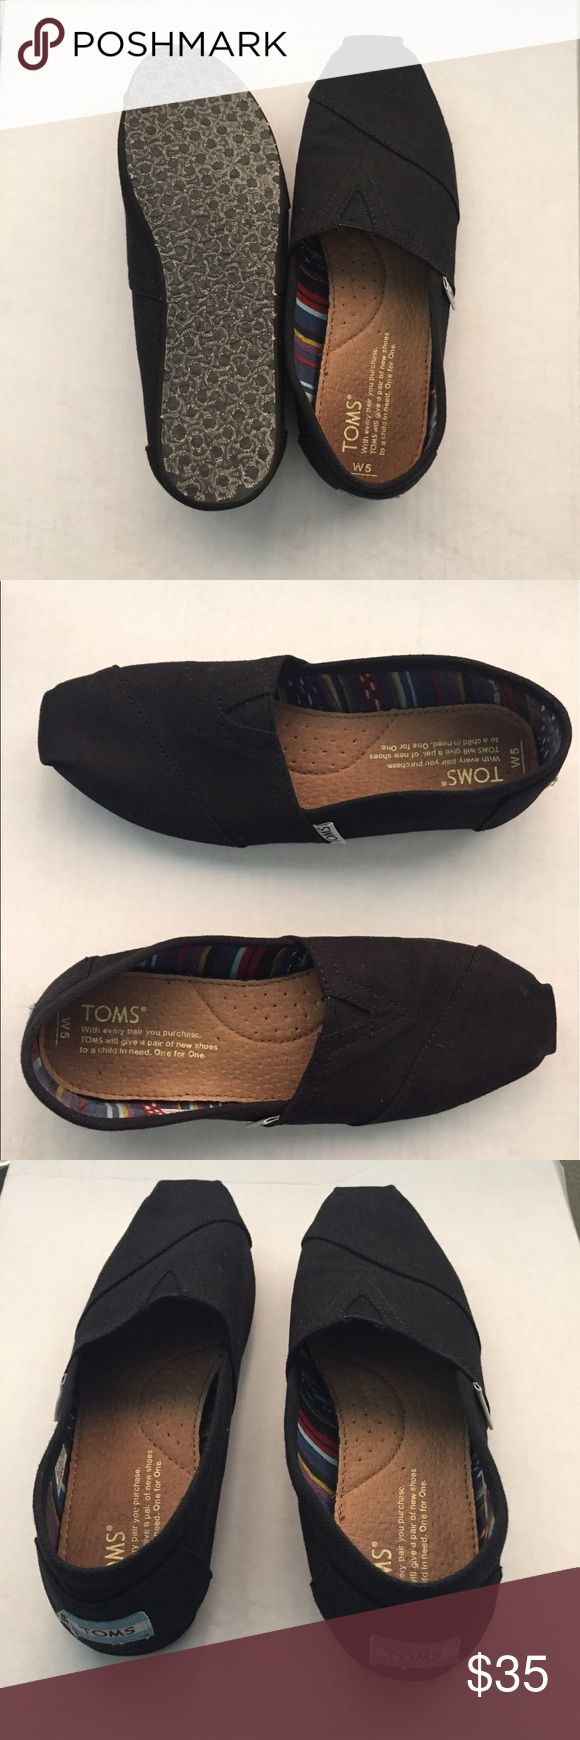 Black Toms all black Classic Toms Women's size 5. great condition, no signs of wear. ask any questions& feel free to offer! Toms Shoes Flats & Loafers